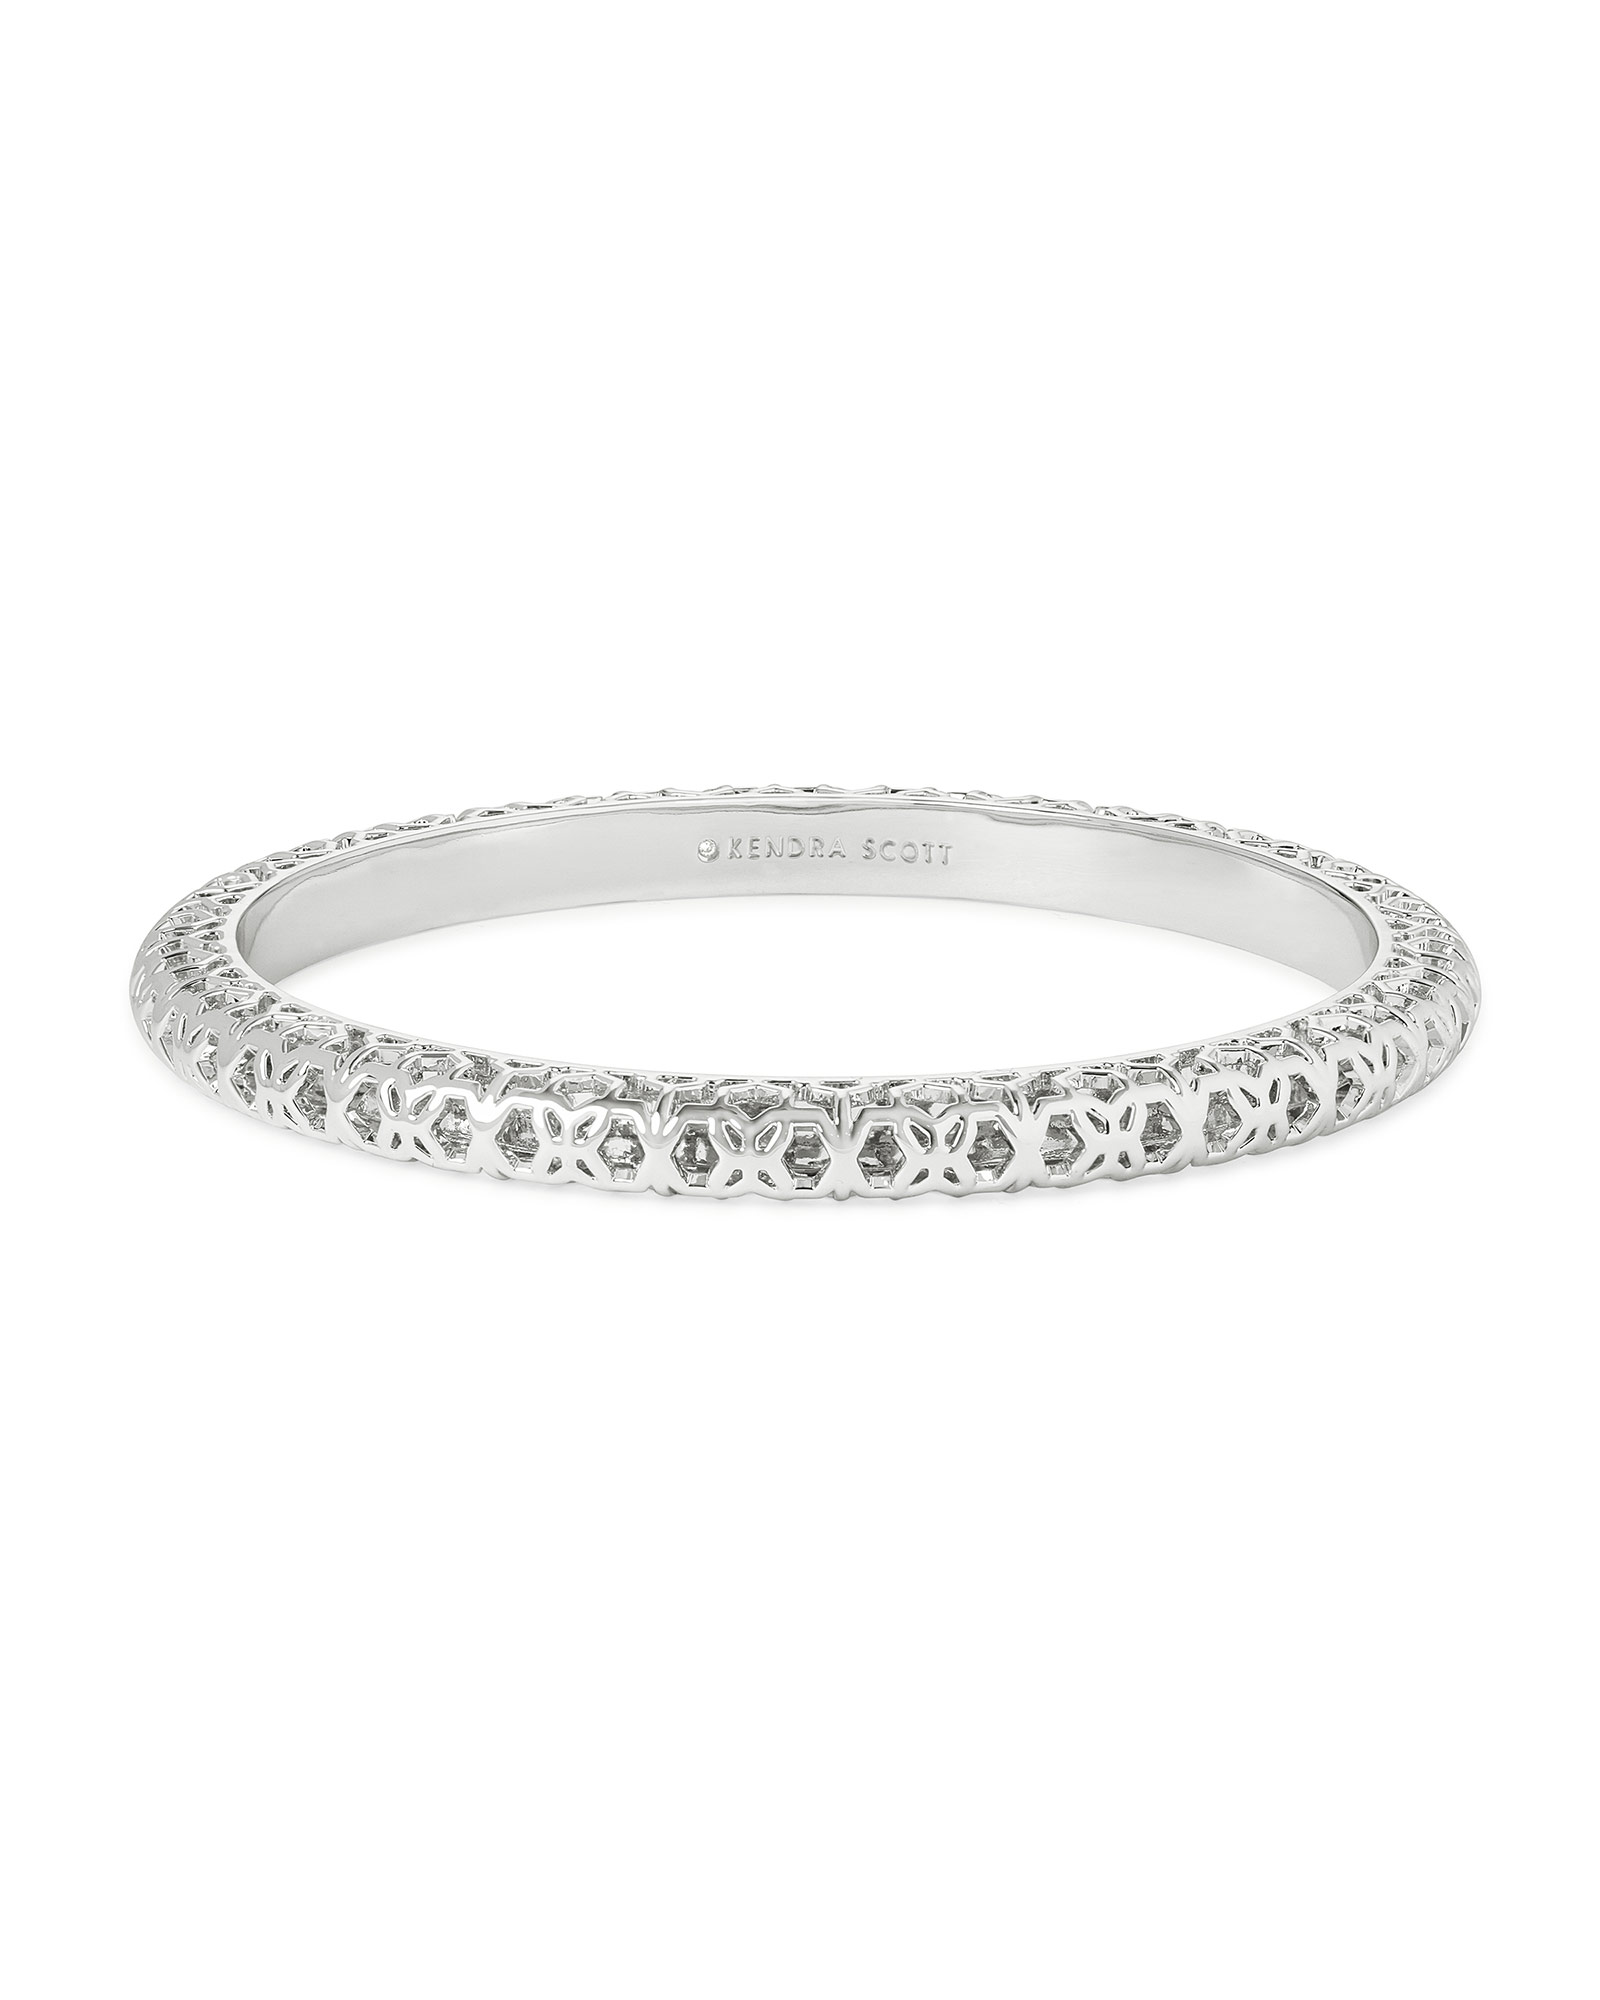 Maggie Bangle Bracelet in Silver Filigree